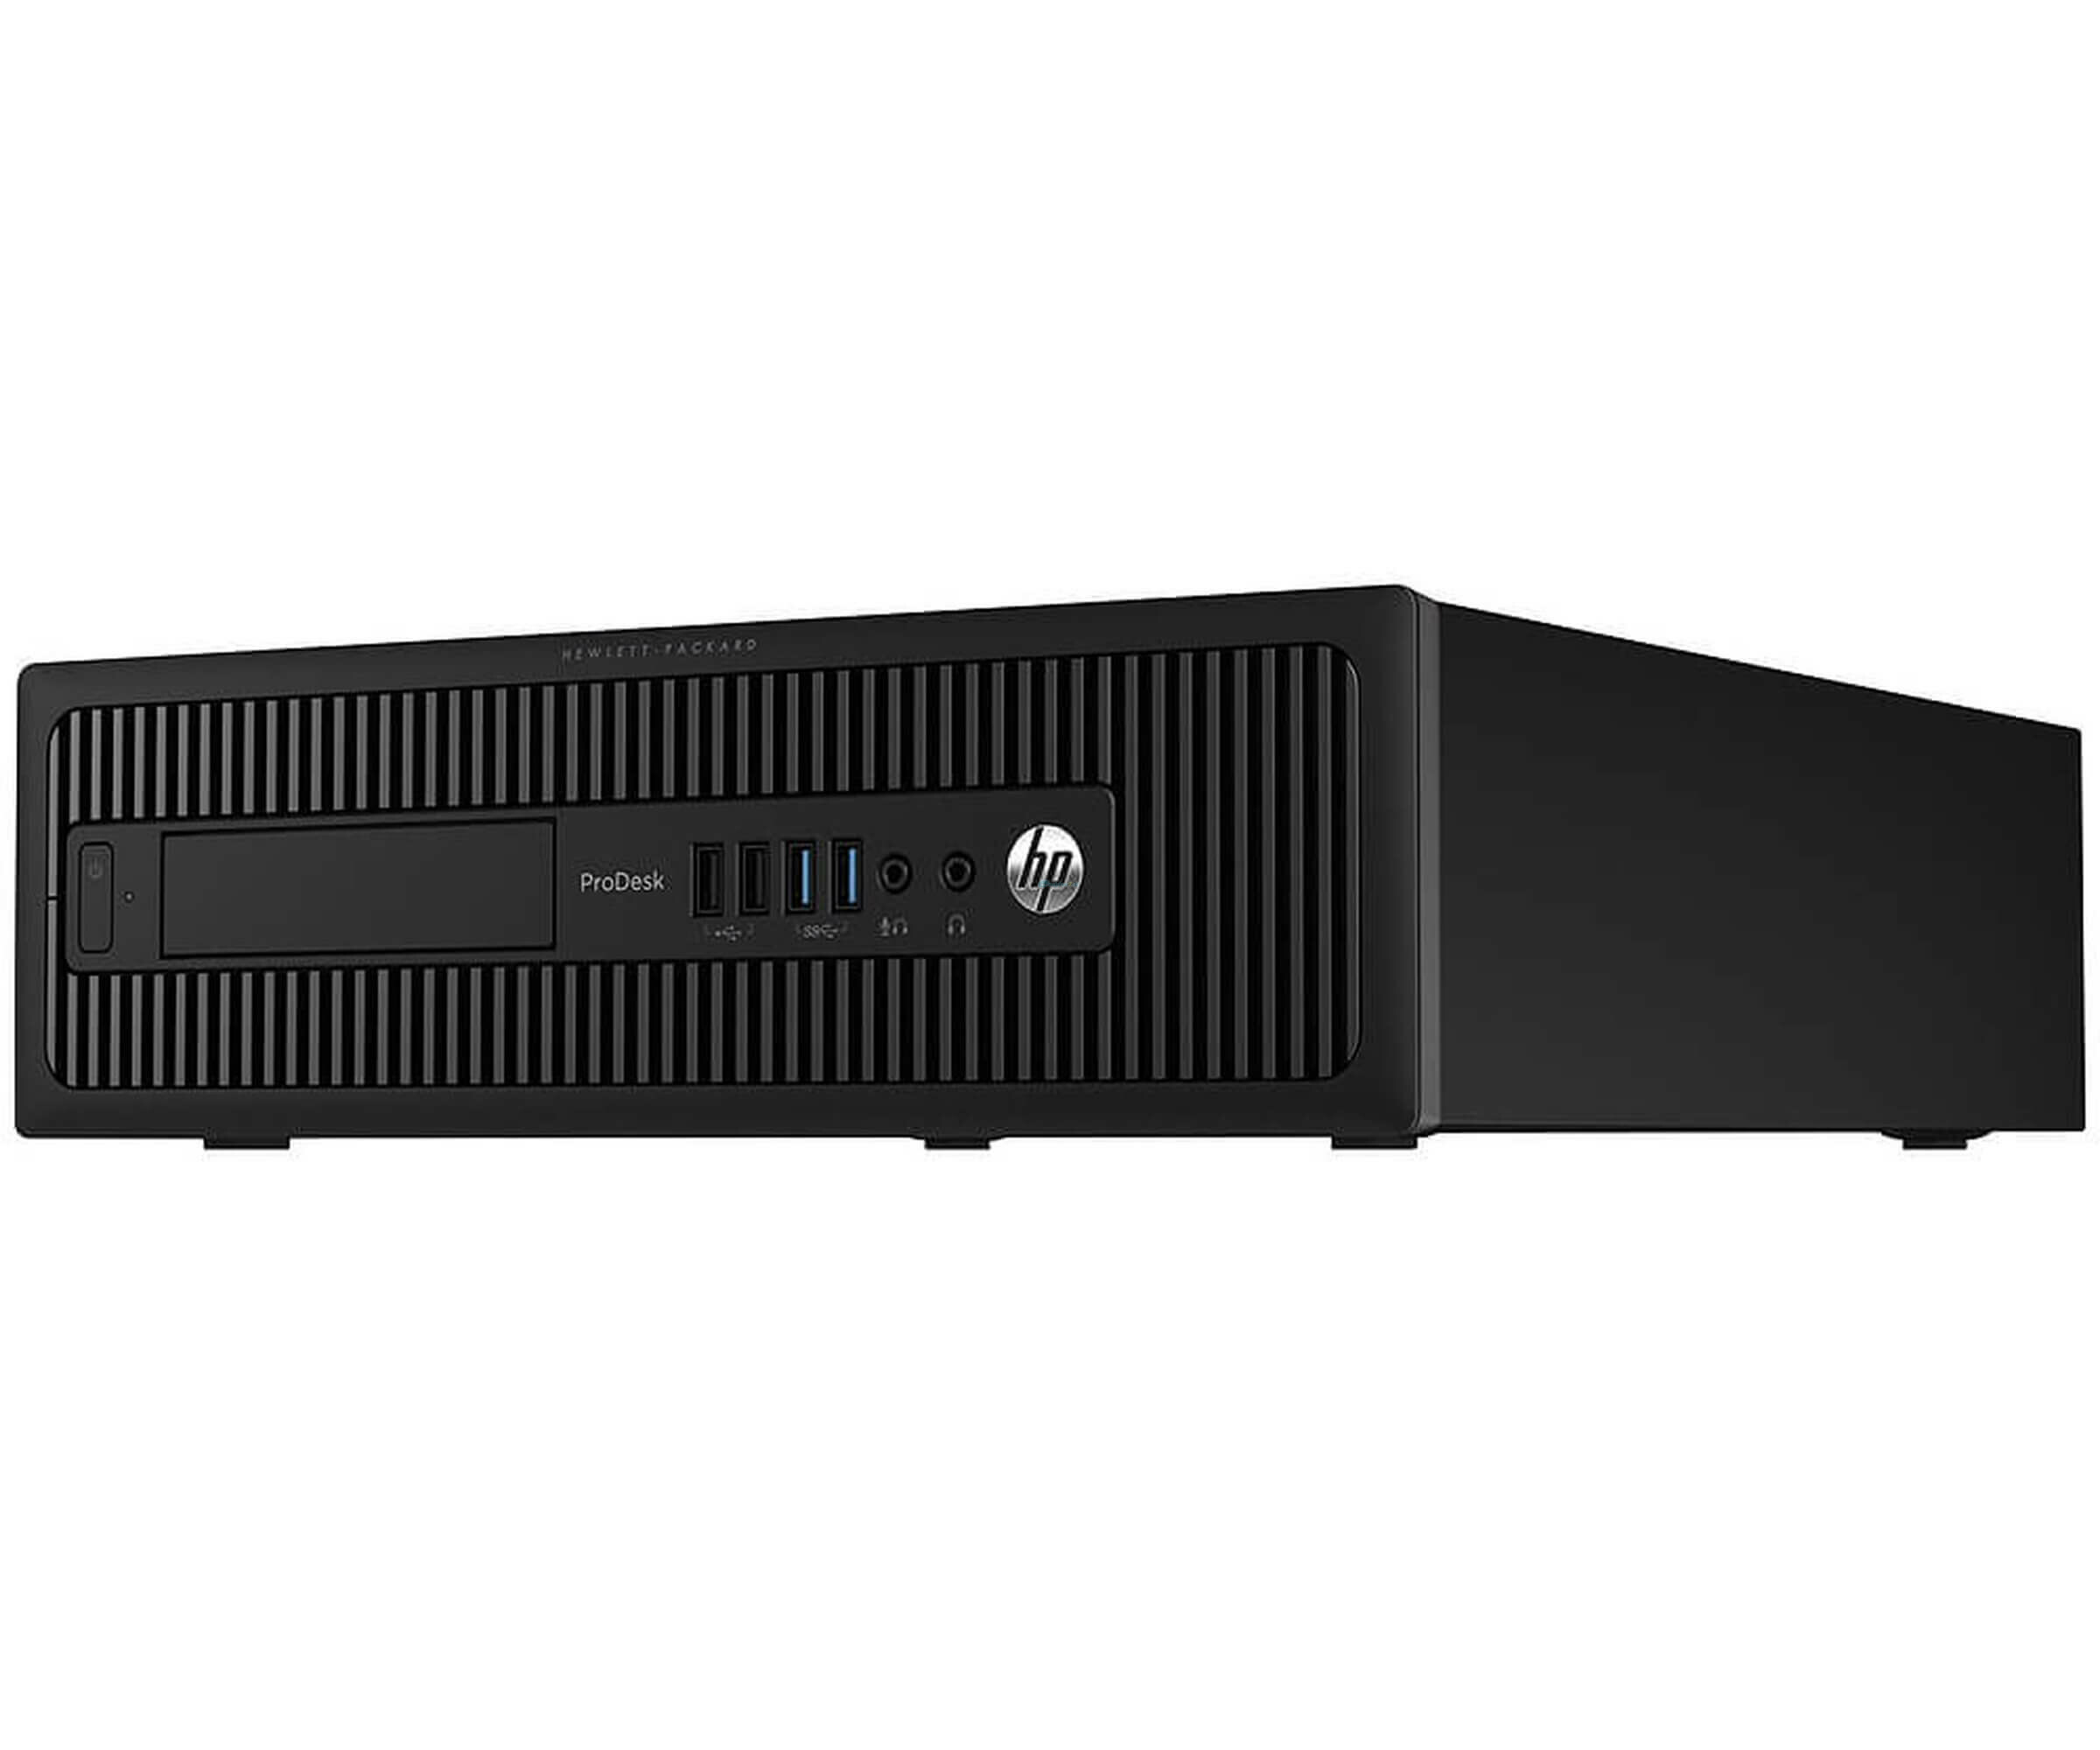 HP ProDesk 600 G1 SFF - Core i5 4570 / 3.2 GHz - RAM 4GB - 250 GB HDD - W7